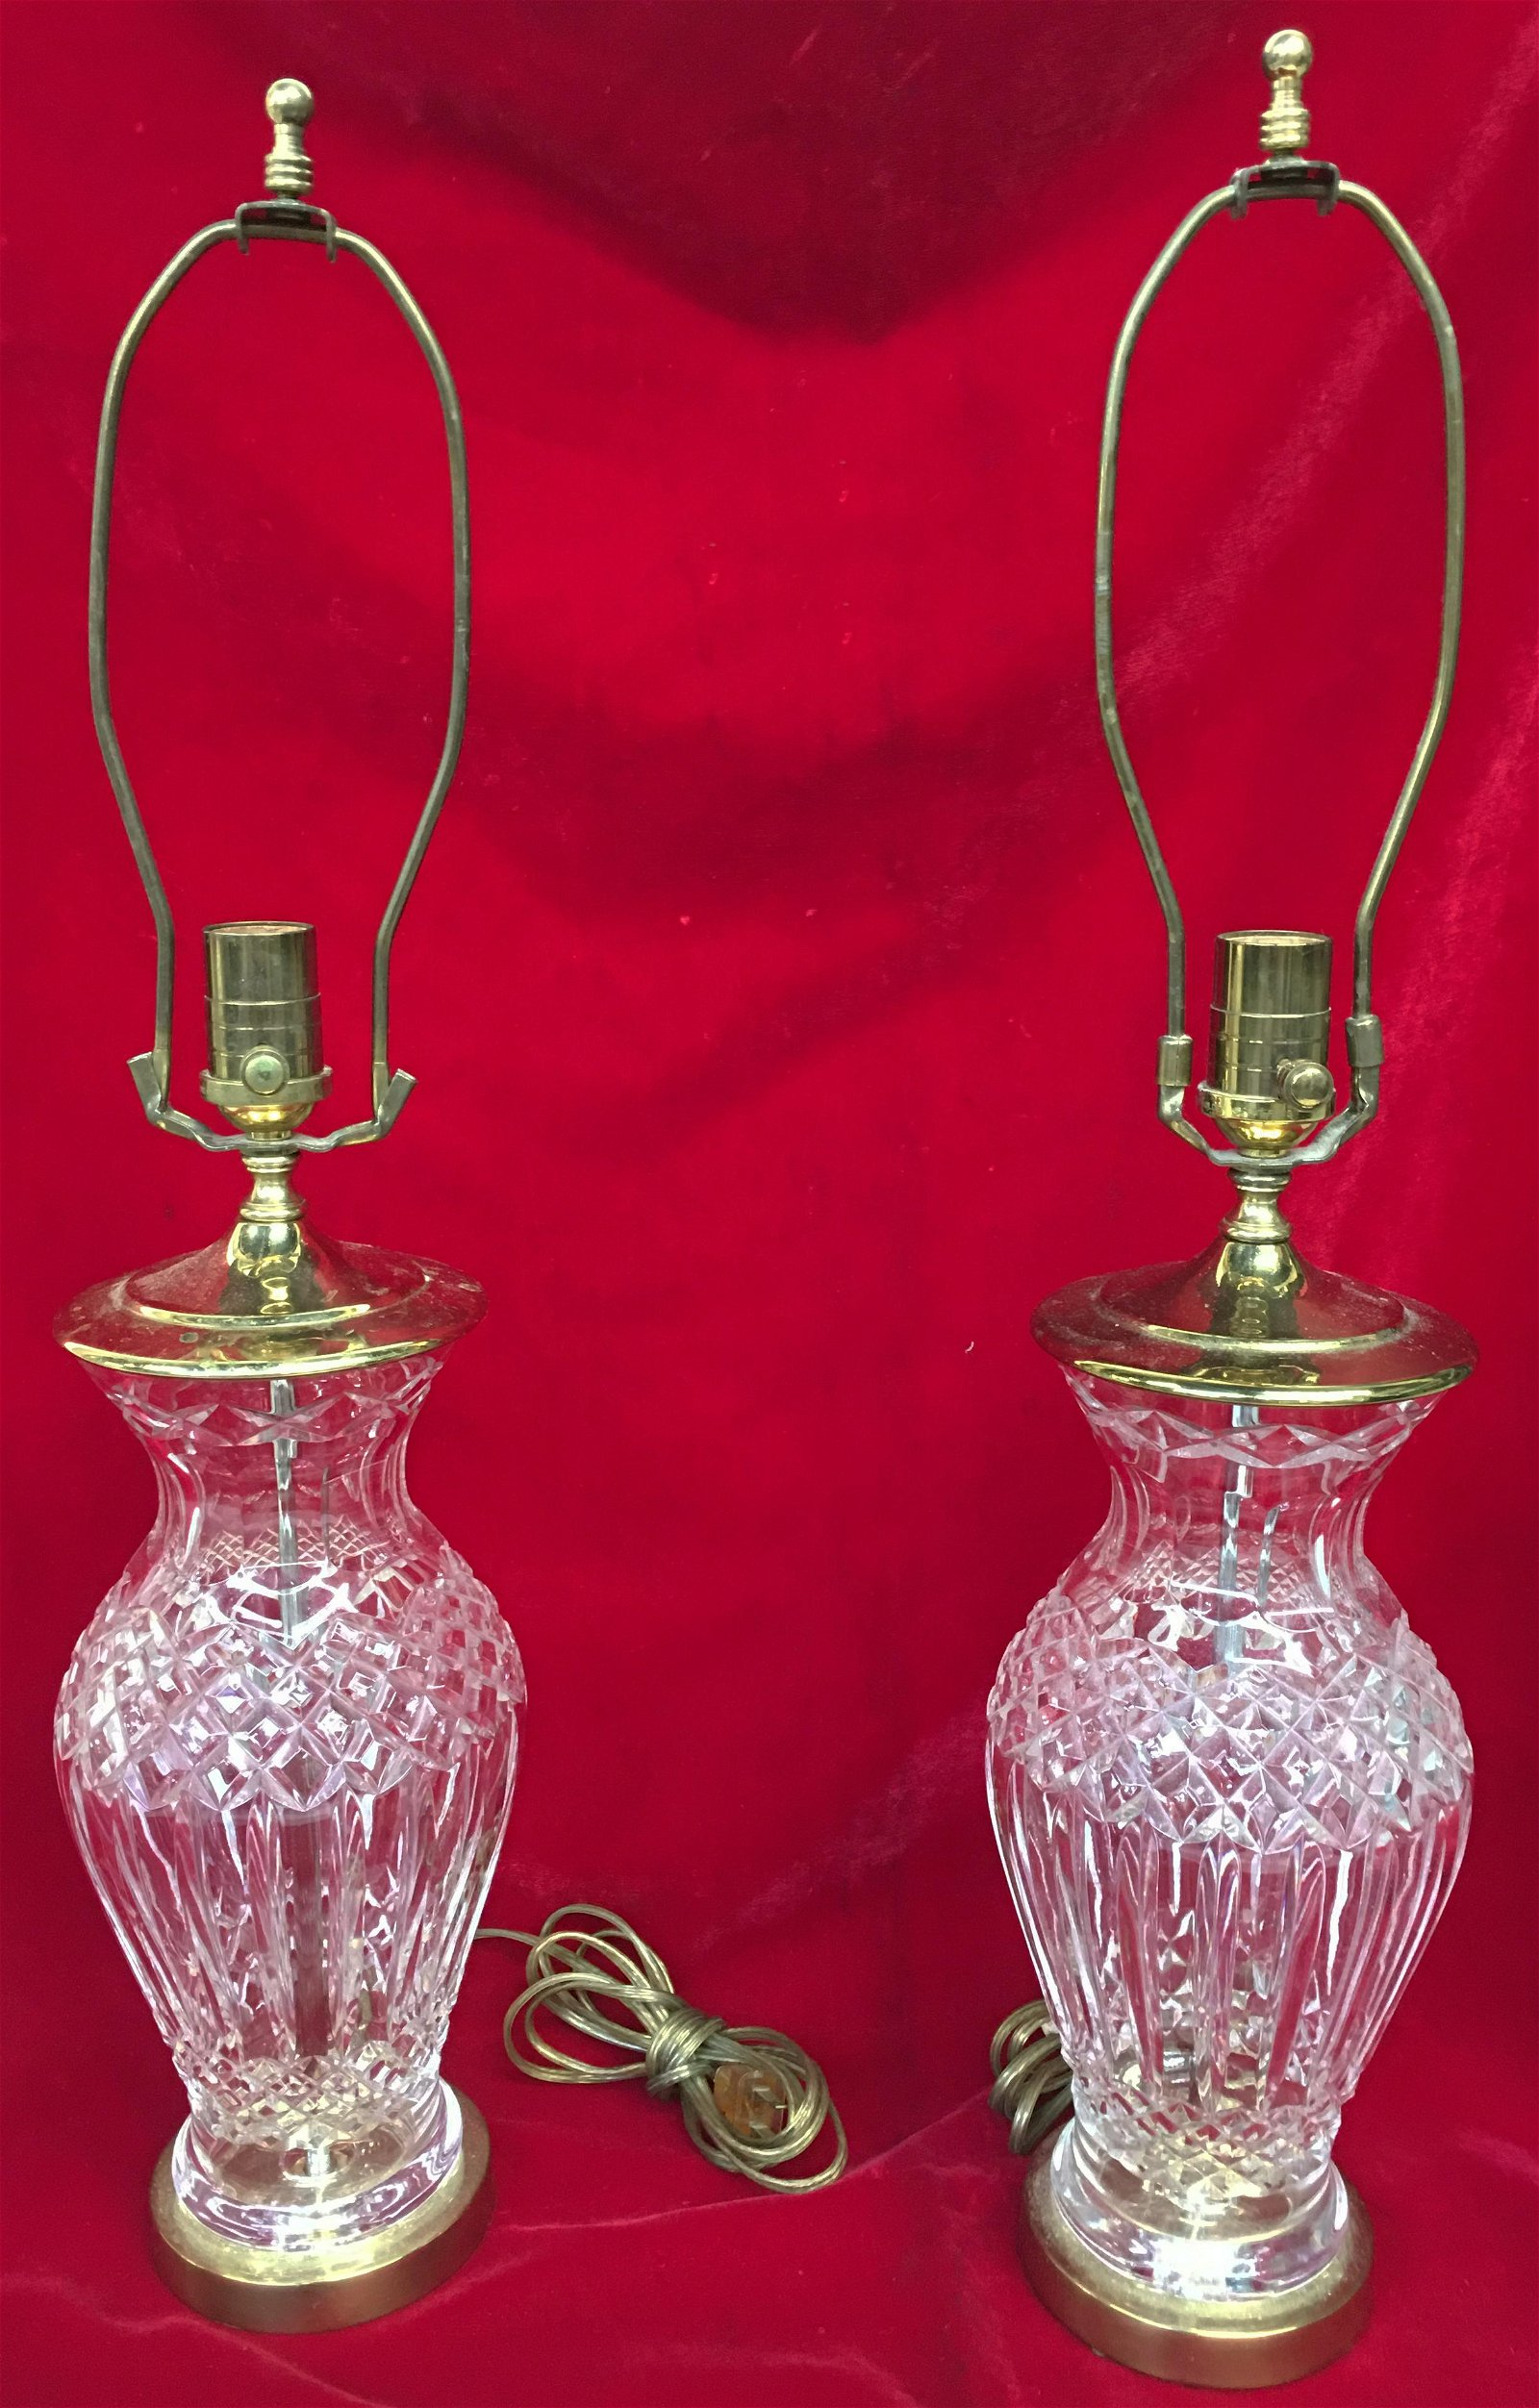 Pair of Waterford Crystal Table Lamps.